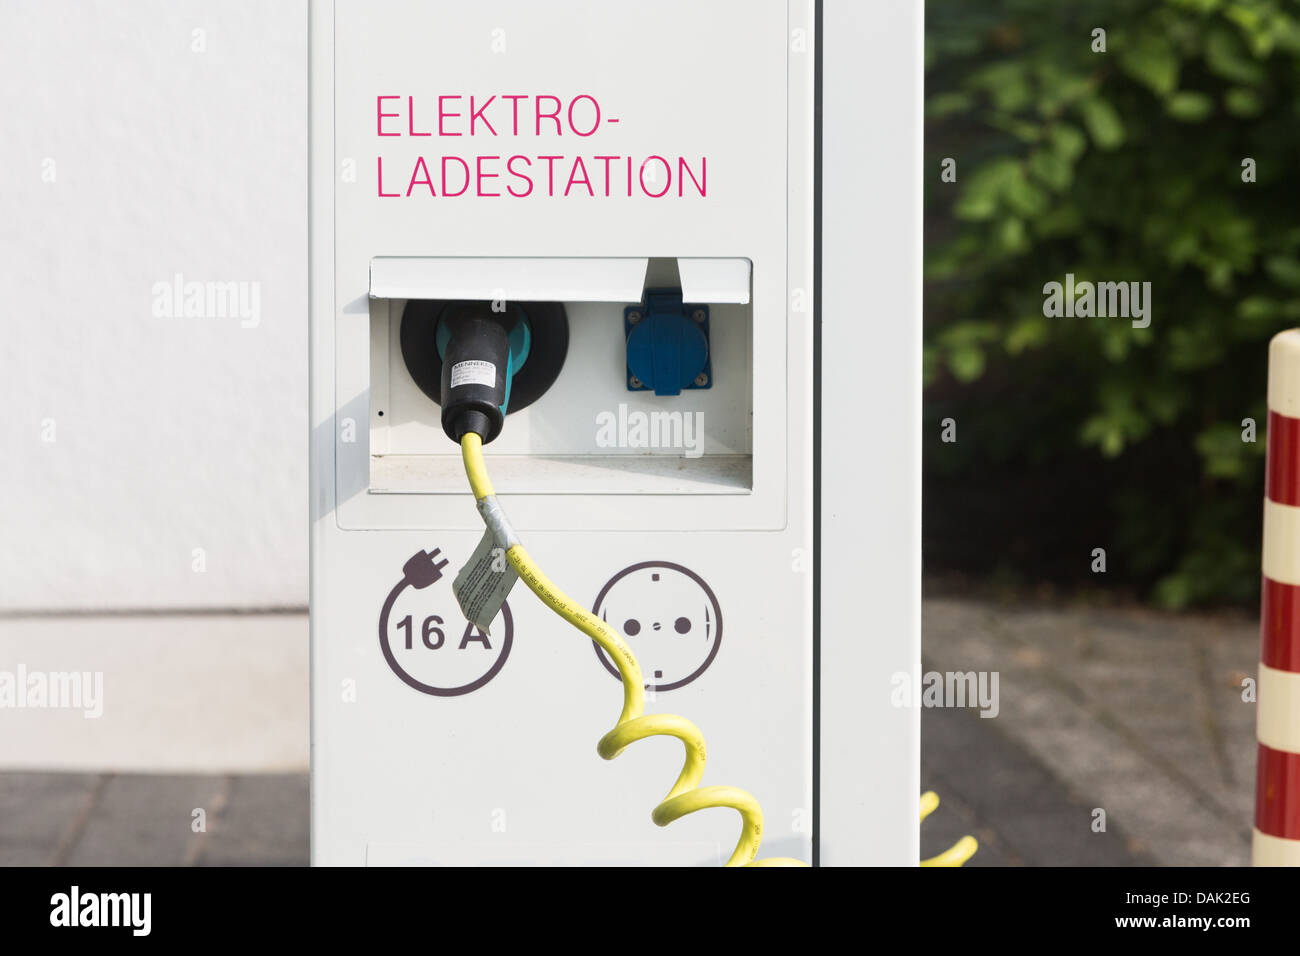 Electric car charging station at Deutsche Telekom headquarters in Bonn, 12.07.2013. Stock Photo